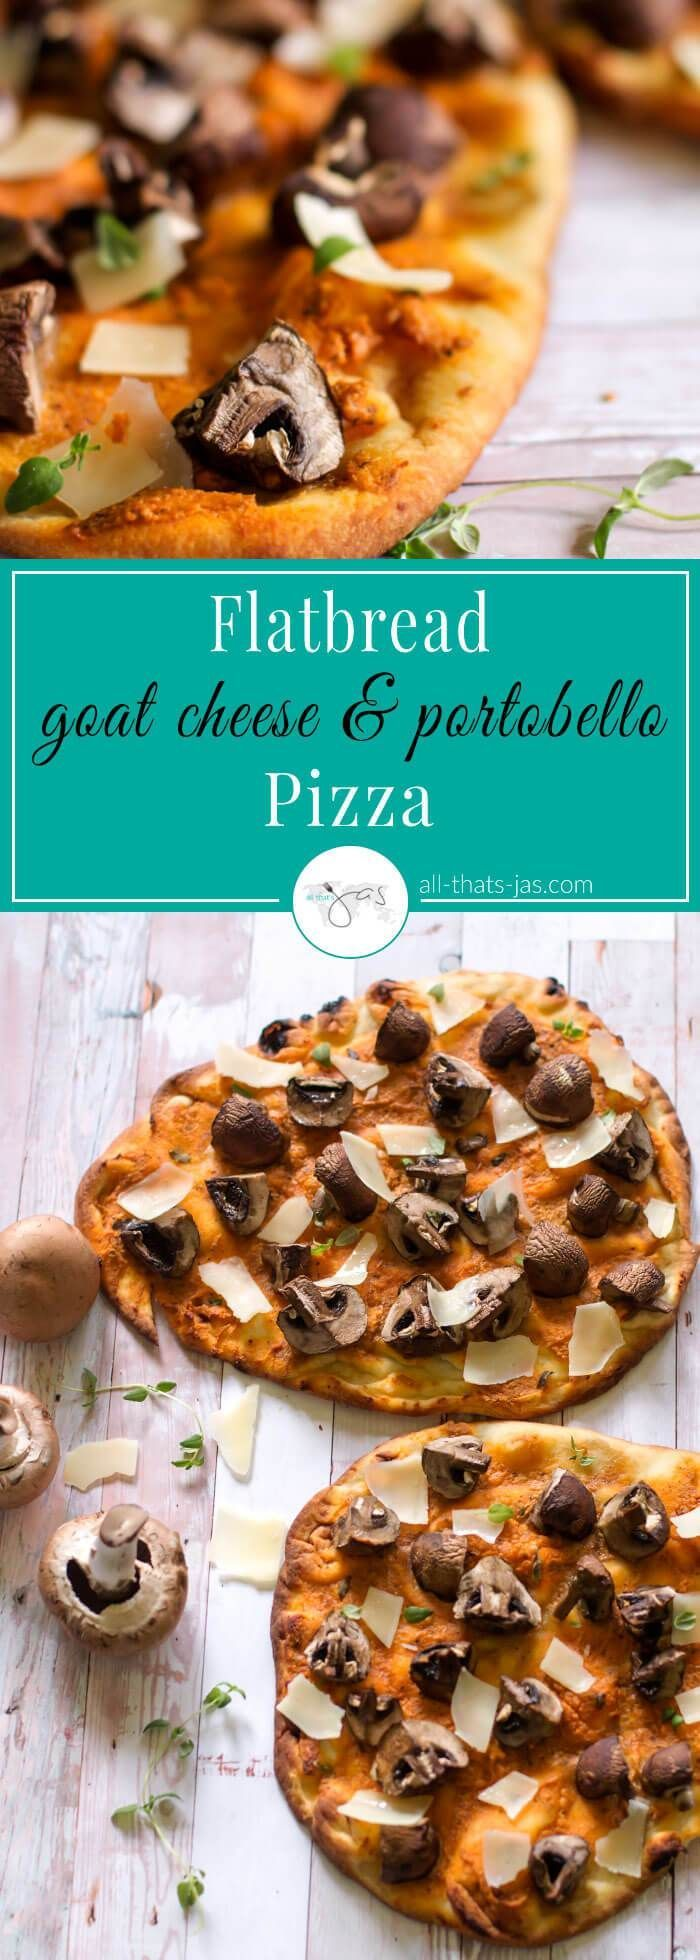 This recipe for crazy delicious 10 minute pizza uses naan flatbread as a pizza crust, a mixture of creamy goat cheese, smoked paprika, garlic, and black pepper for the pizza sauce, and baby portobello mushrooms with shaved parmesan cheese for the topping. Perfect for light lunch, snack or an appetizer.